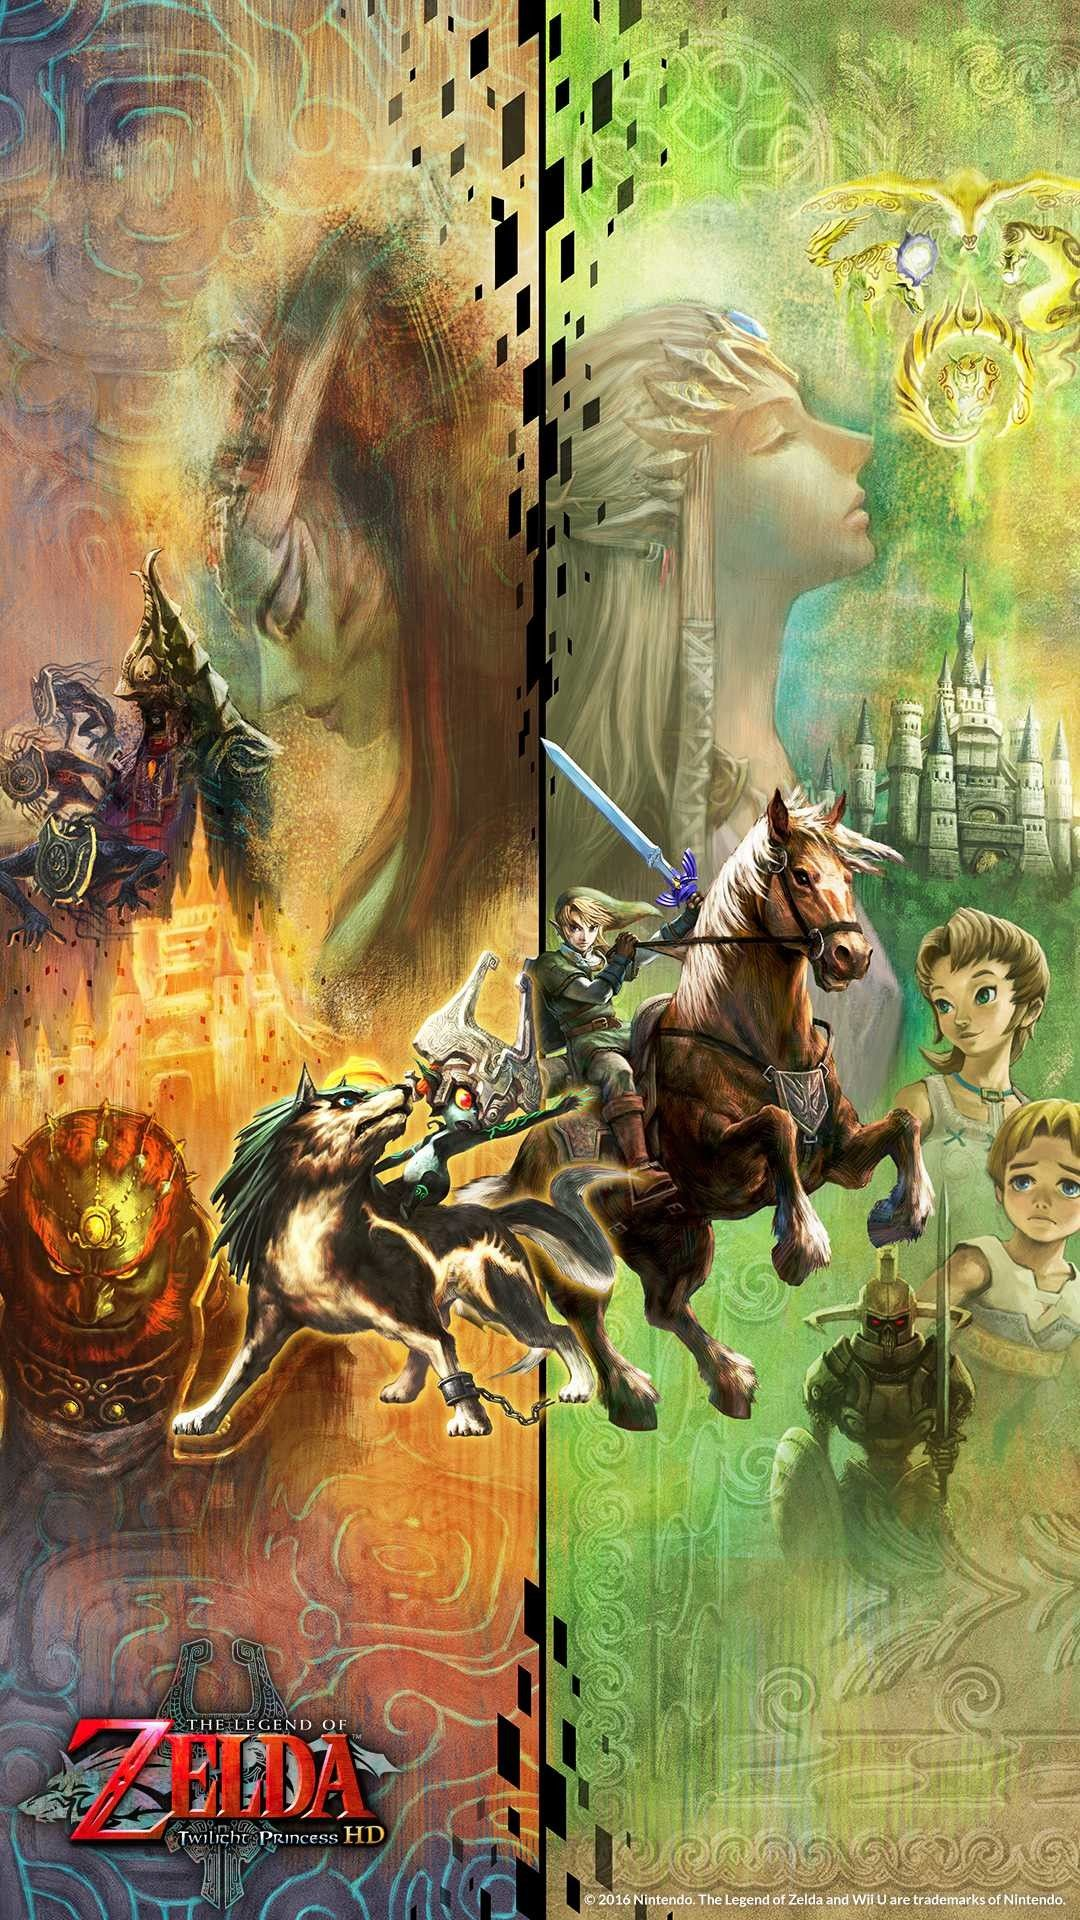 Twilight Princess Legend Of Zelda Wallpaper In 2020 Legend Of Zelda Tattoos Zelda Art Legend Of Zelda